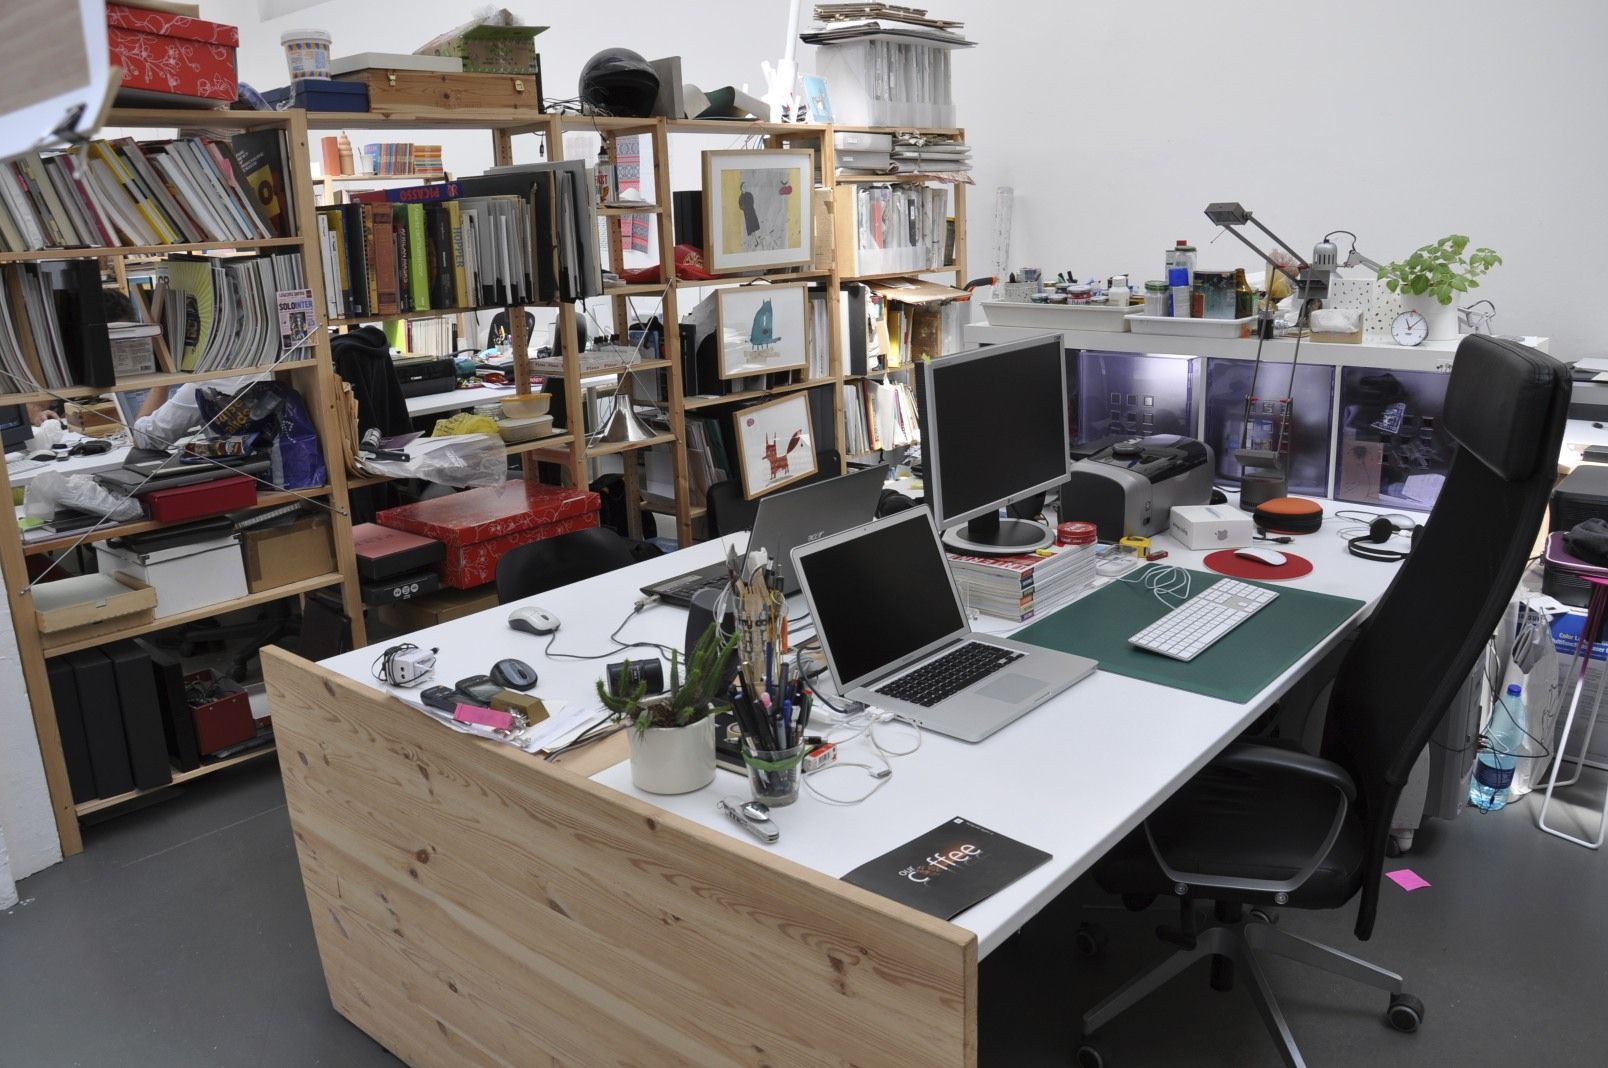 A creative space to work in is invaluable cerano dodici young designers studio space